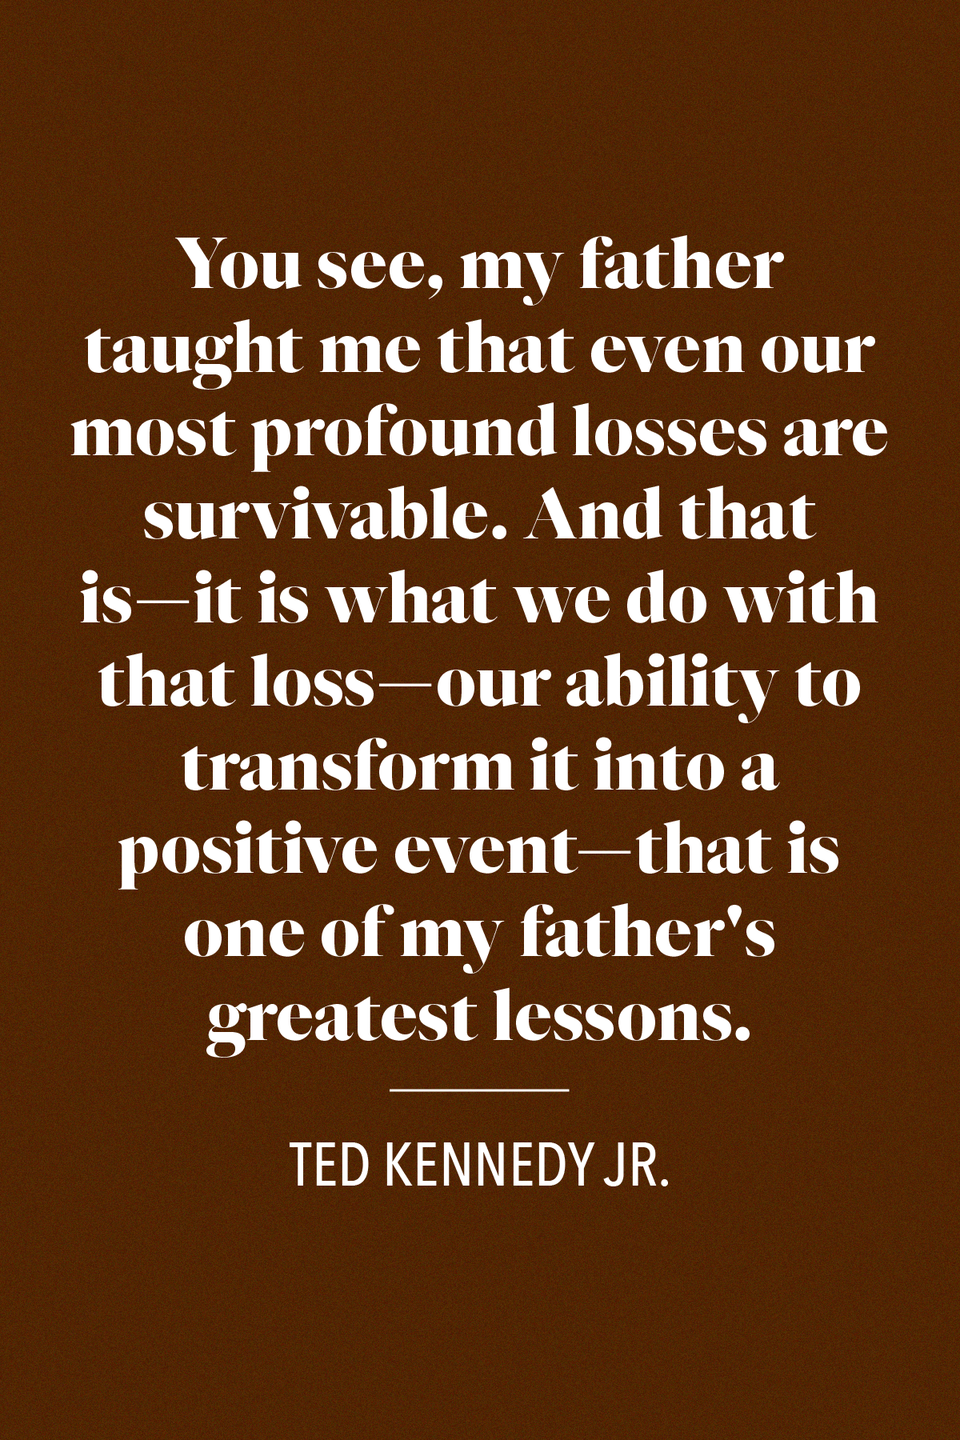 "<p>Ted Kennedy Jr. <a href=""https://www.realclearpolitics.com/articles/2009/09/14/ted_kennedy_sons_larry_king_live_transcript_98320.html"" rel=""nofollow noopener"" target=""_blank"" data-ylk=""slk:spoke about his dad"" class=""link rapid-noclick-resp"">spoke about his dad</a>, the former U.S. Senator from Massachusetts, on Larry King Live in 2009 weeks after his passing, ""You see, my father taught me that even our most profound losses are survivable. And that is -- it is what we do with that loss -- our ability to transform it into a positive event —that is one of my father's greatest lessons.""</p>"